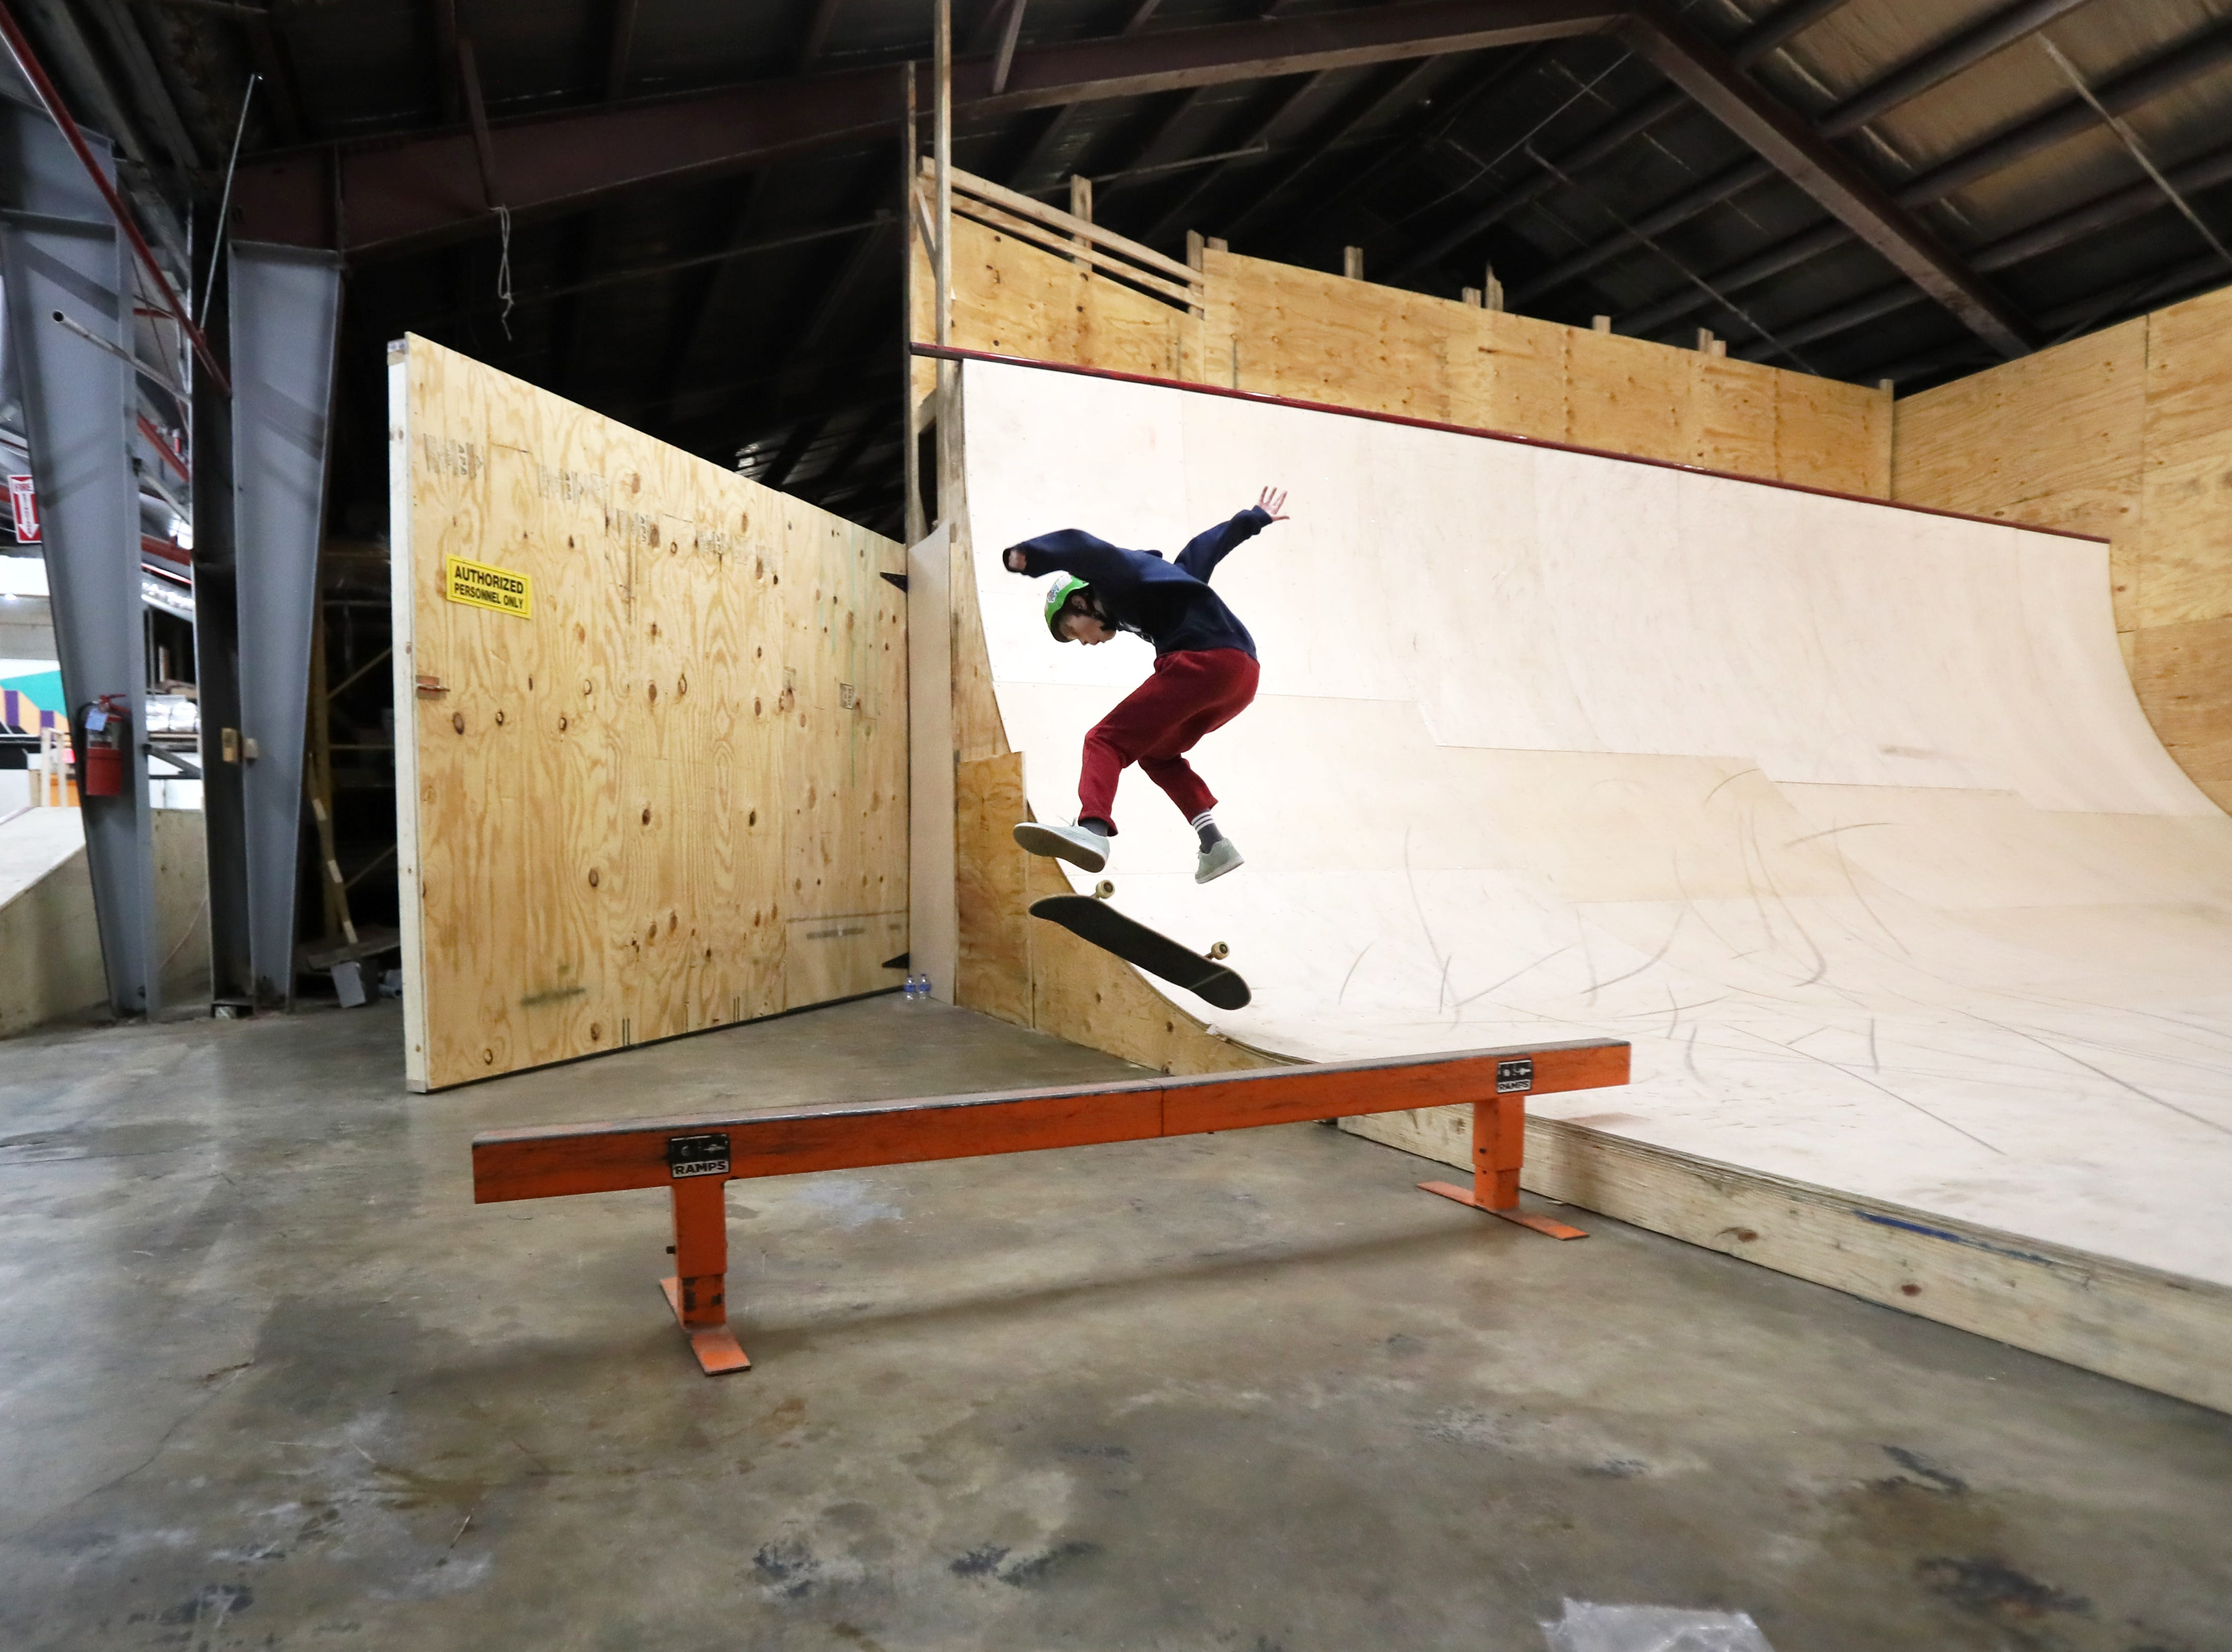 Doran Shafer, 13, rides inside Society Skatepark, a joint venture with Contact Skateboard Shop in the Broad Avenue Arts District which held its soft opening on Thursday, Dec. 20, 2018.